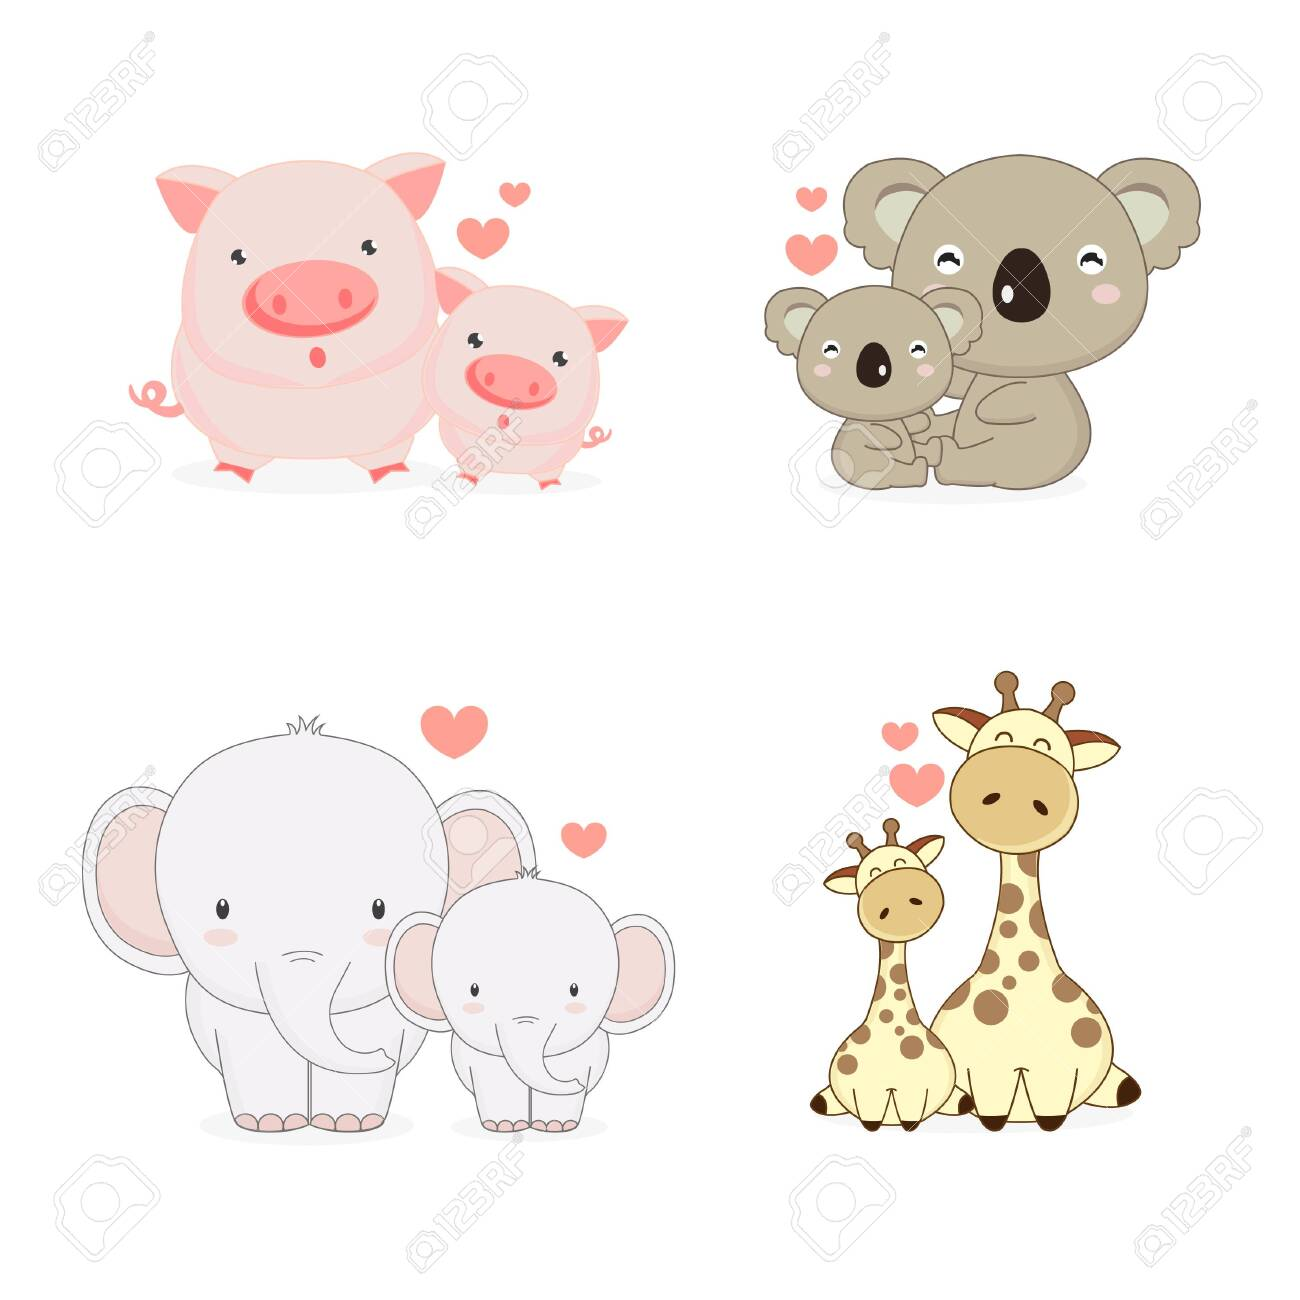 Mom And Baby Animals With Love Pig Koala Elephant And Giraffe Royalty Free Cliparts Vectors And Stock Illustration Image 126736223